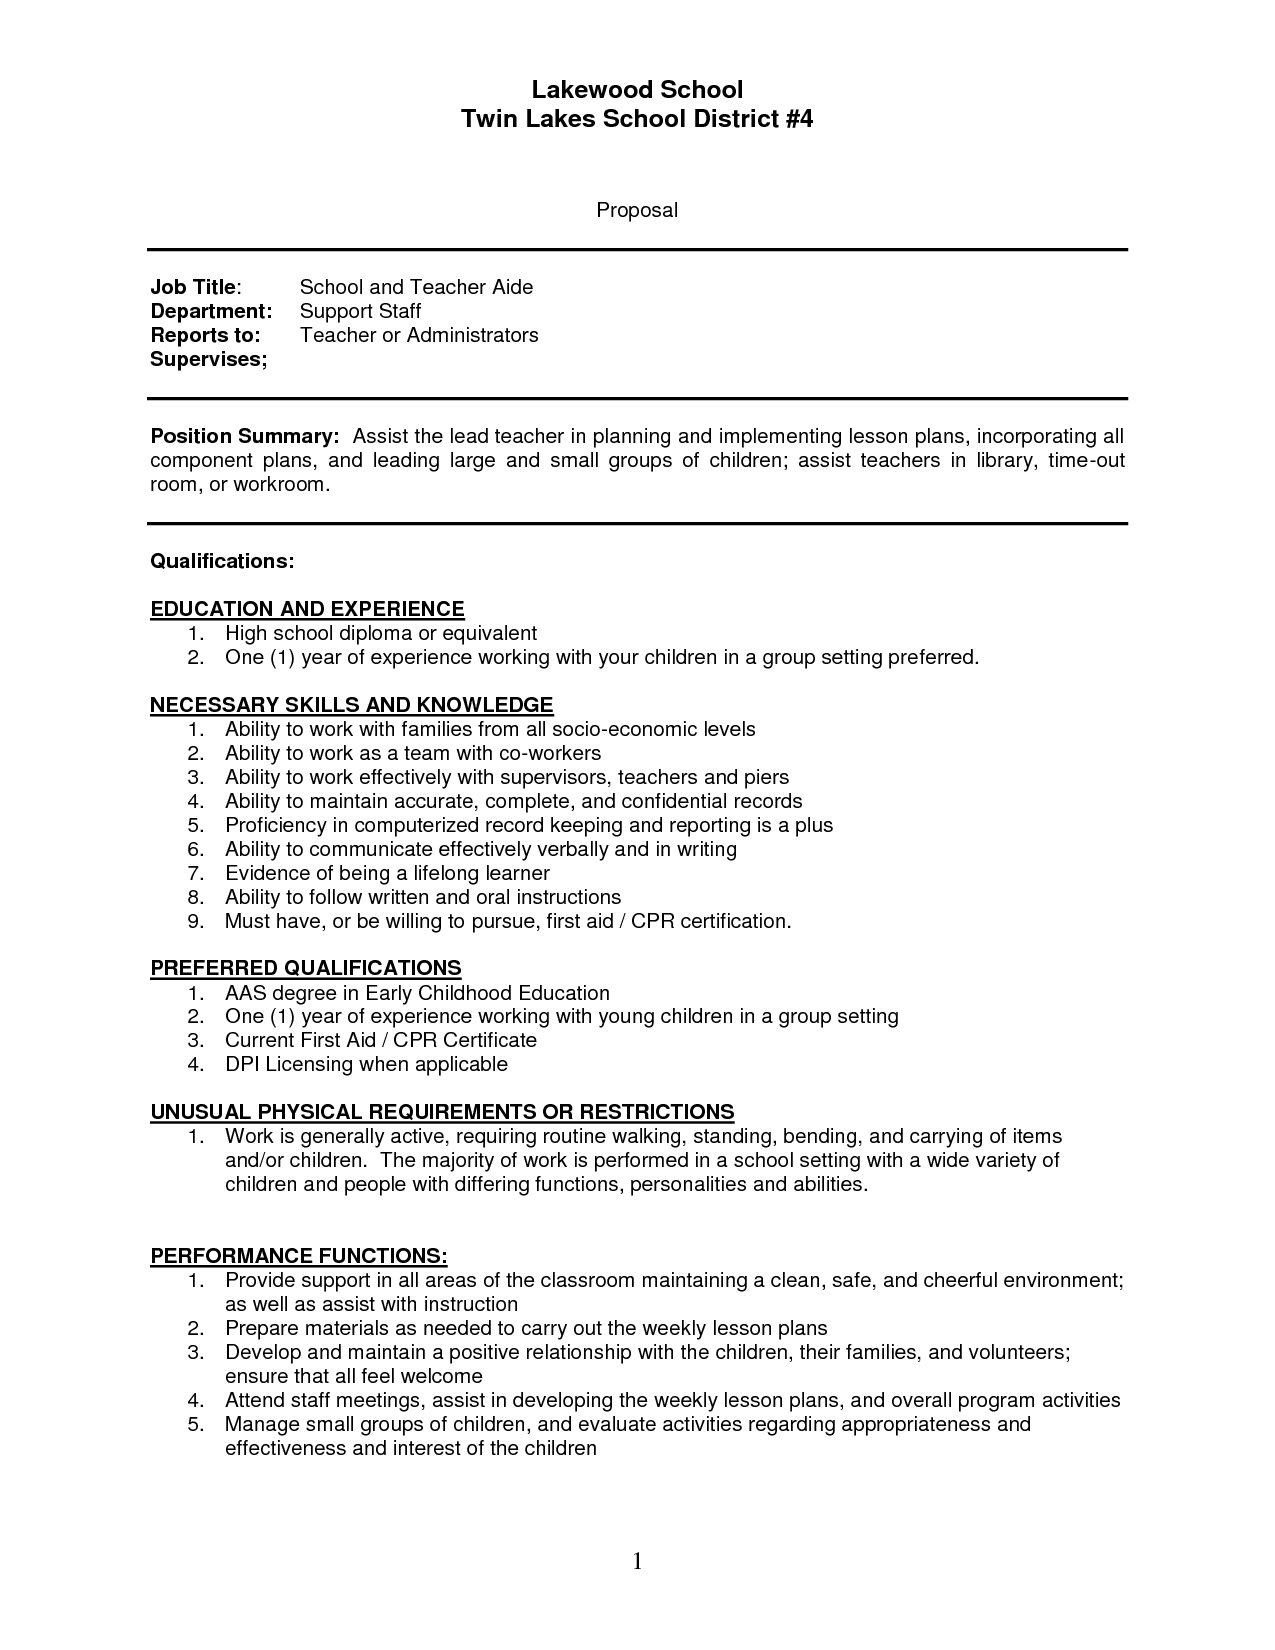 resume Teacher Aide Job Description Resume teacher assistant sample resume of teachers aides for teacher